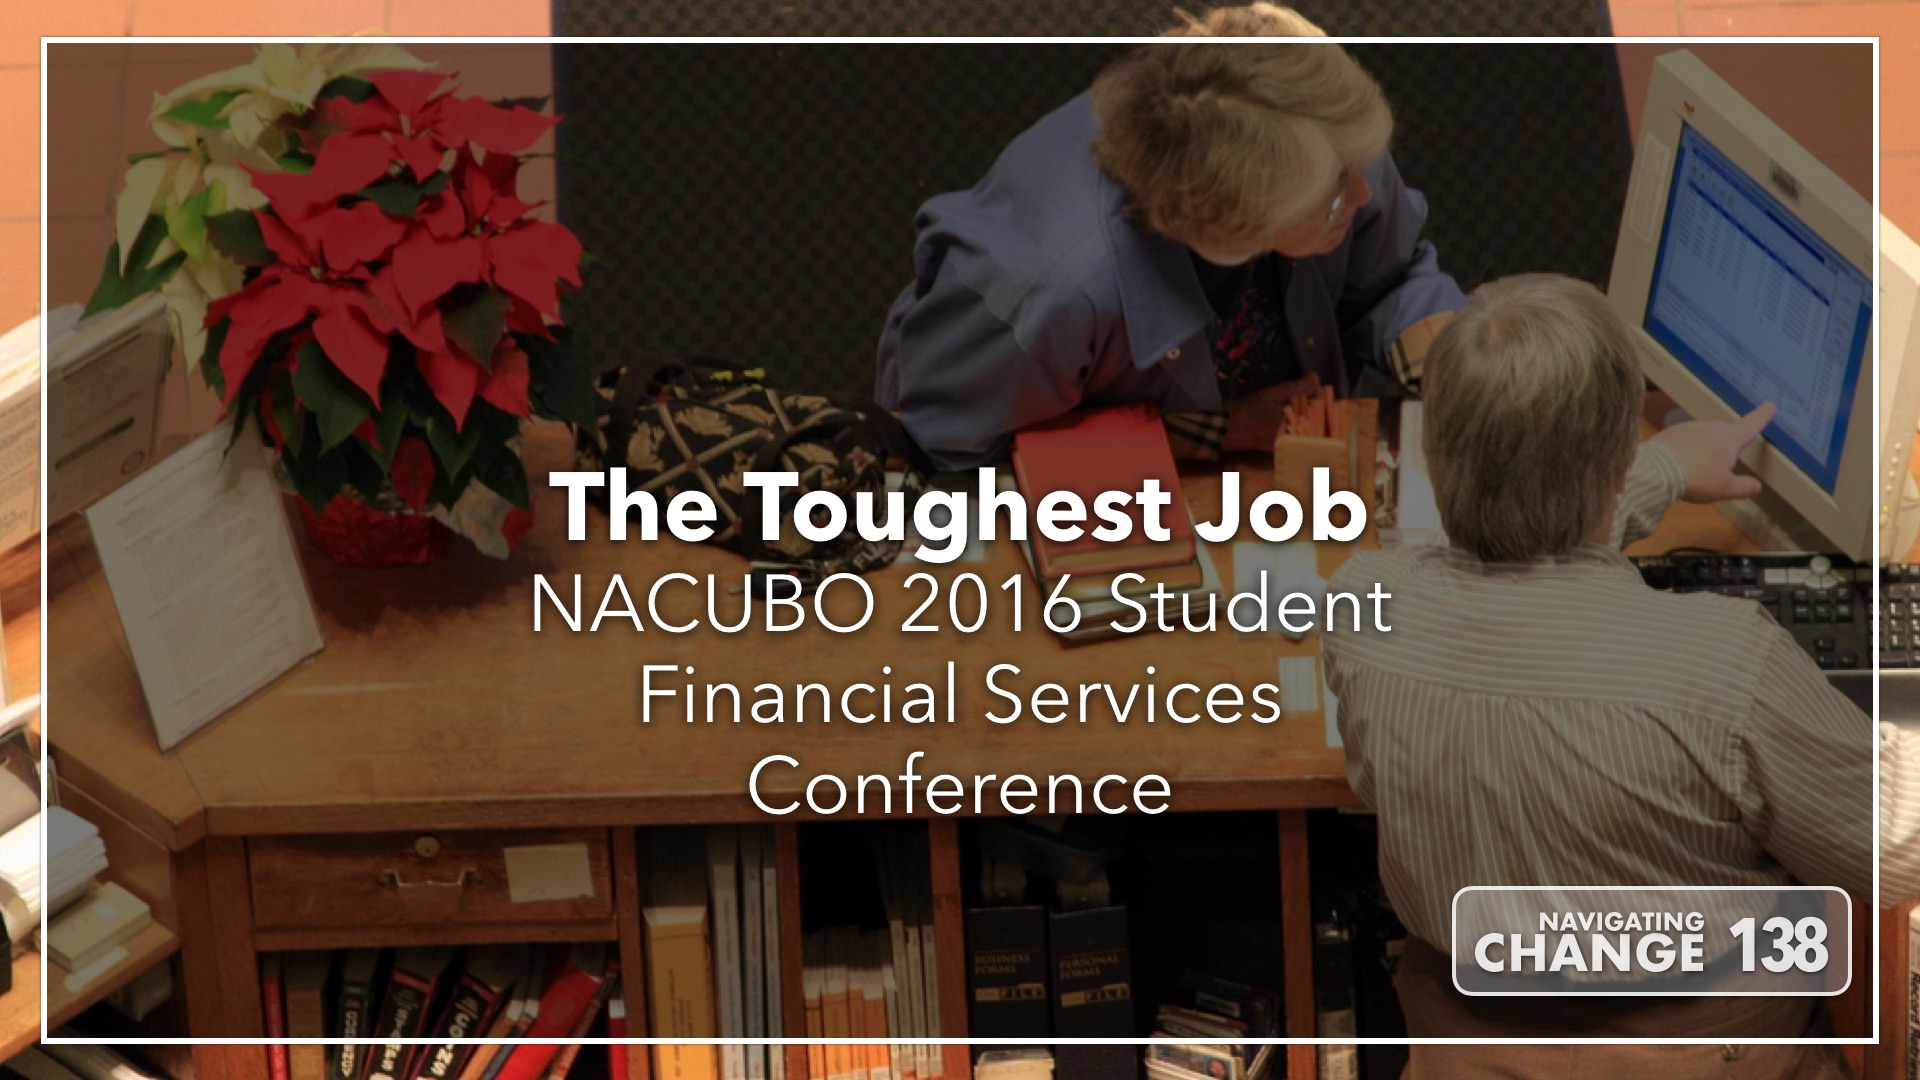 Listen to NACUBO Student Financial Services Conference on Navigating Change The Education Podcast